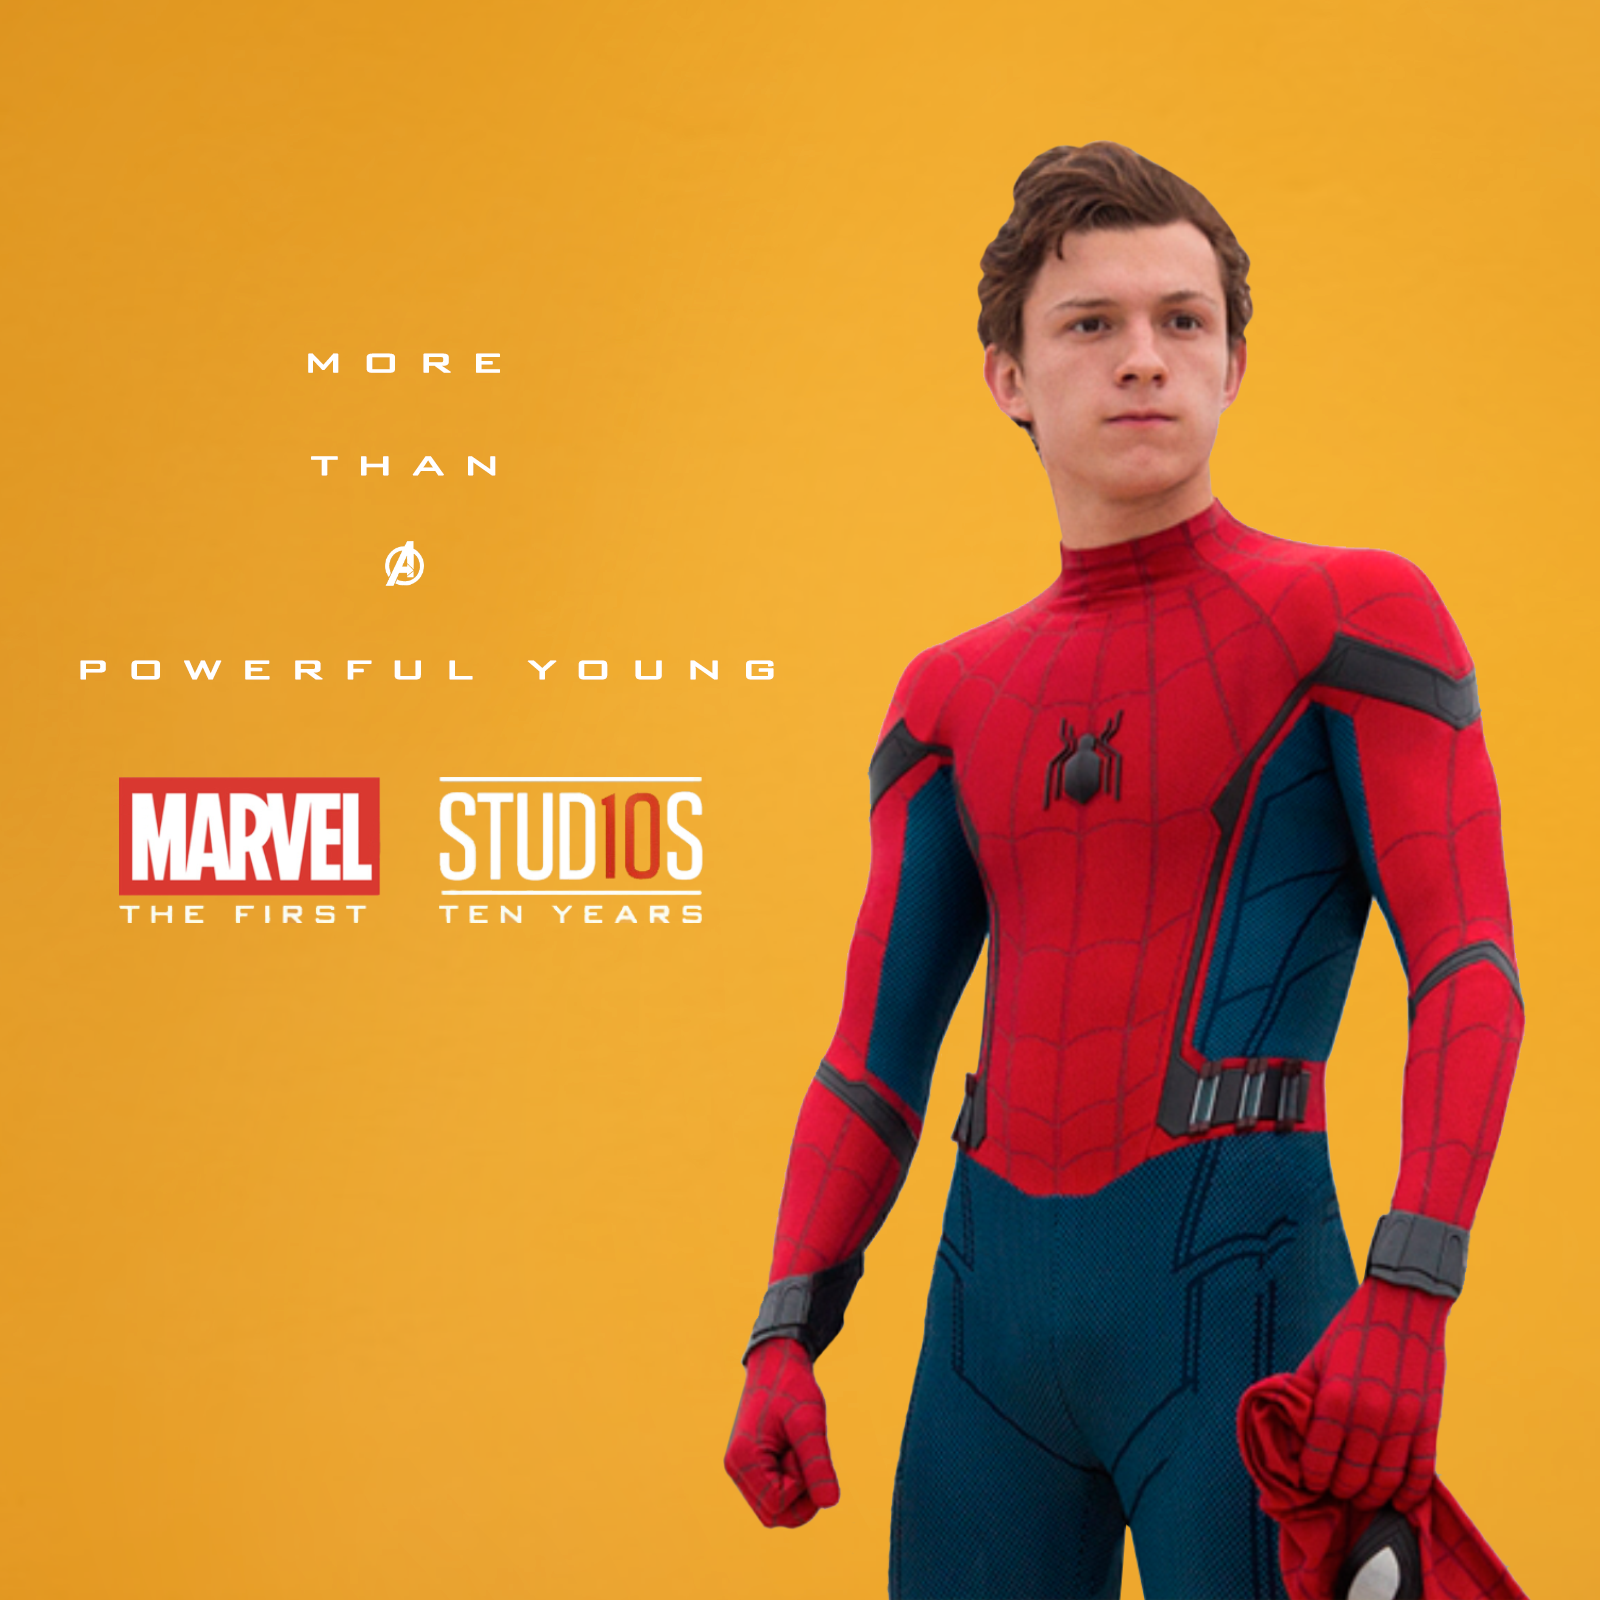 Tomholland Marvel Fanart Spiderman The First 10 Years Marvel Superheroes Marvel Films Marvel Spiderman